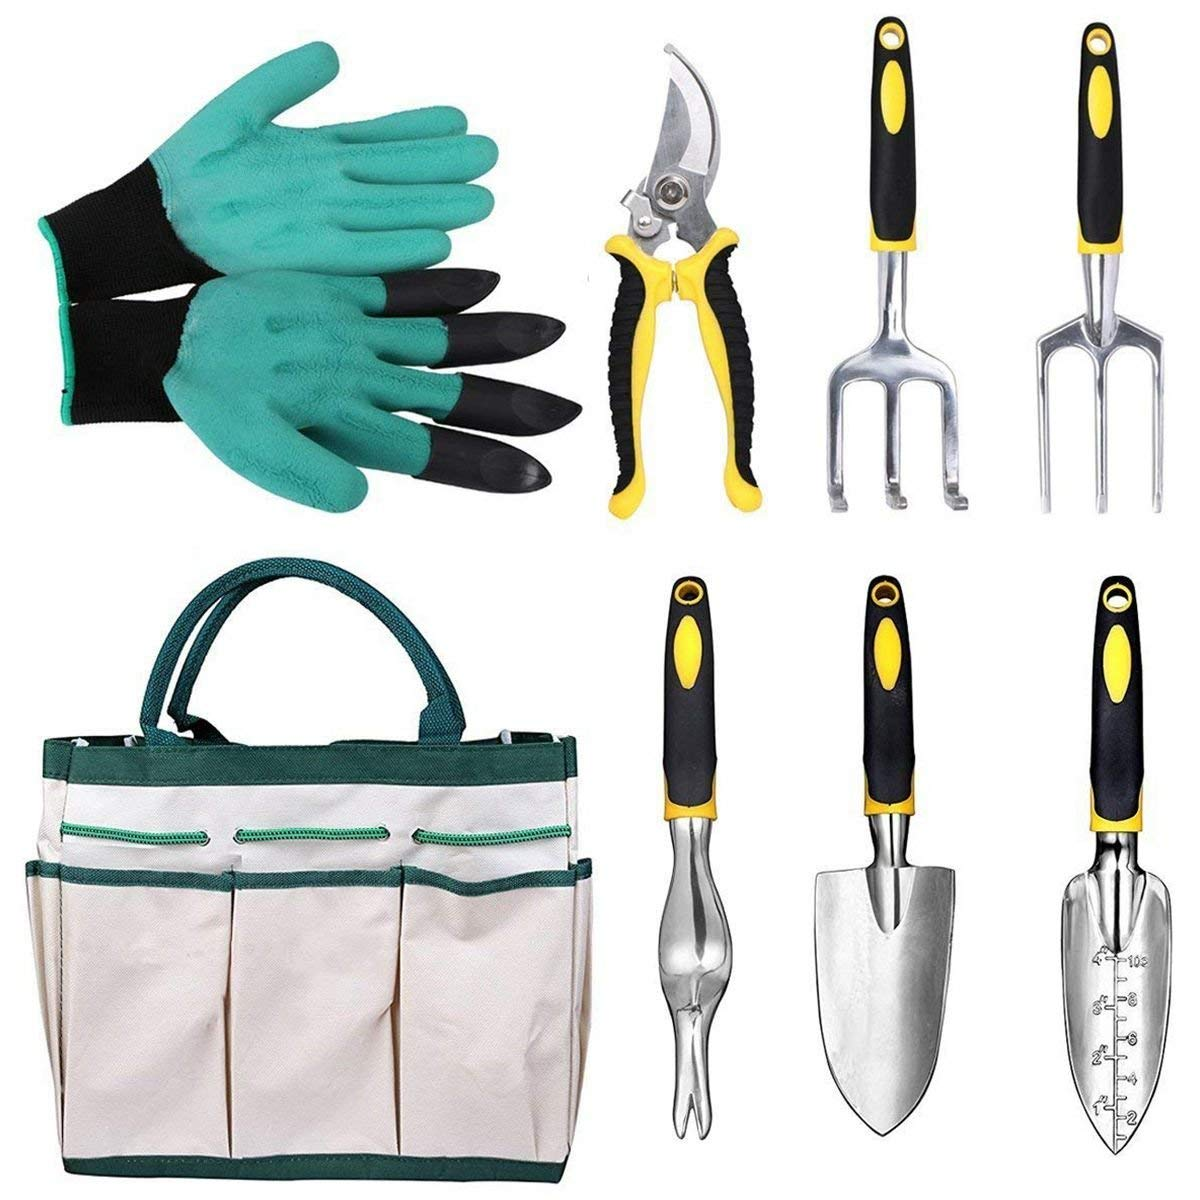 SODIAL 8 Pieces Aluminum Gardening Tools Garden Kit Hand Tools with Ergonomic Handles included Transplanter Trowel Pruner Rake Cultivator Garden Genie Gloves and Canvas Tote